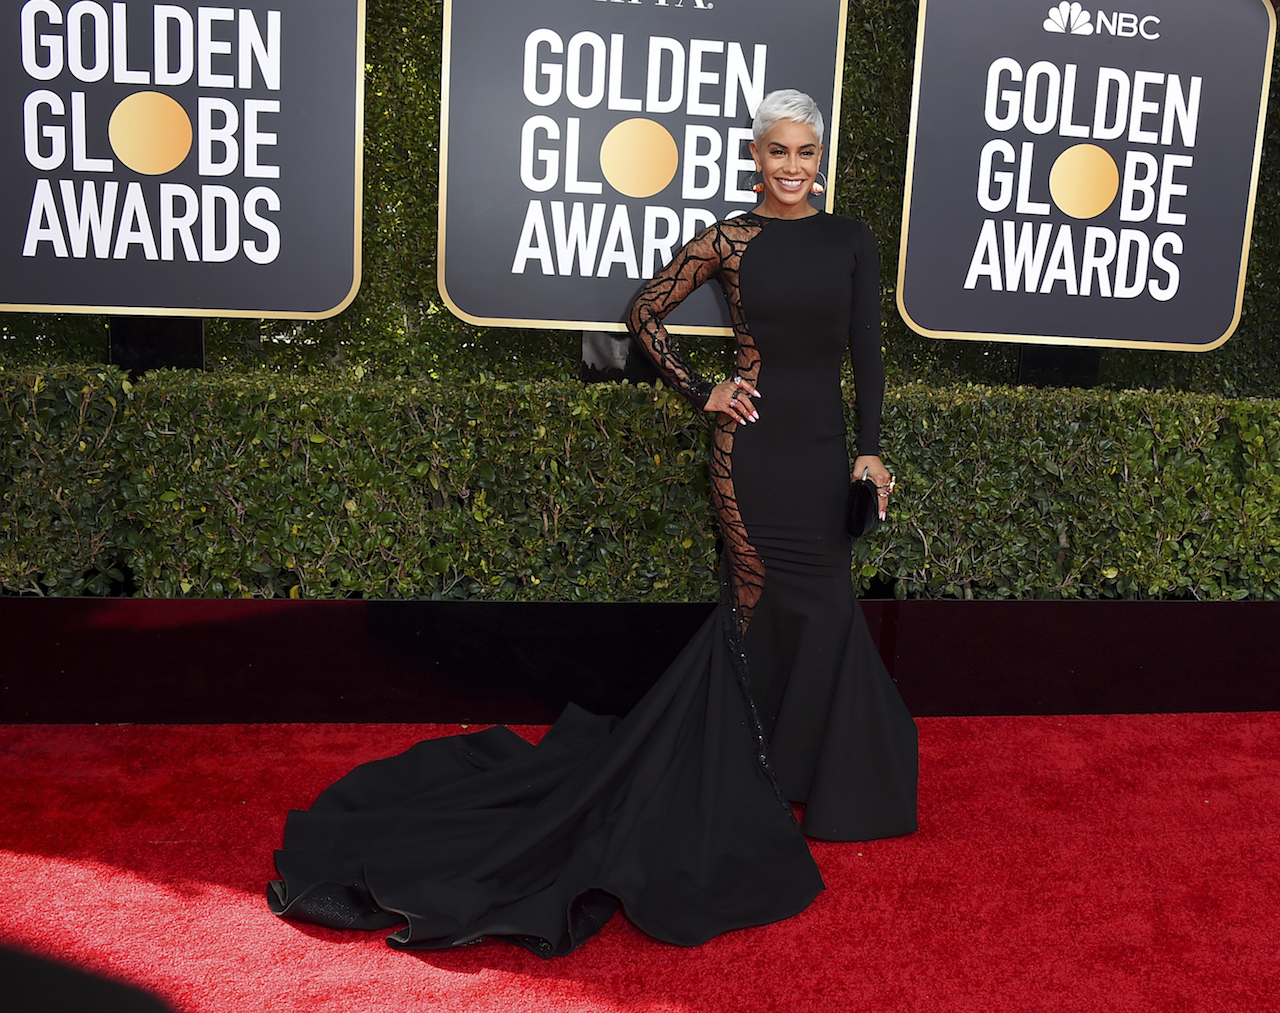 "<div class=""meta image-caption""><div class=""origin-logo origin-image ap""><span>AP</span></div><span class=""caption-text"">Sibley Scoles arrives at the 76th annual Golden Globe Awards at the Beverly Hilton Hotel on Sunday, Jan. 6, 2019, in Beverly Hills, Calif. (Jordan Strauss/Invision/AP)</span></div>"